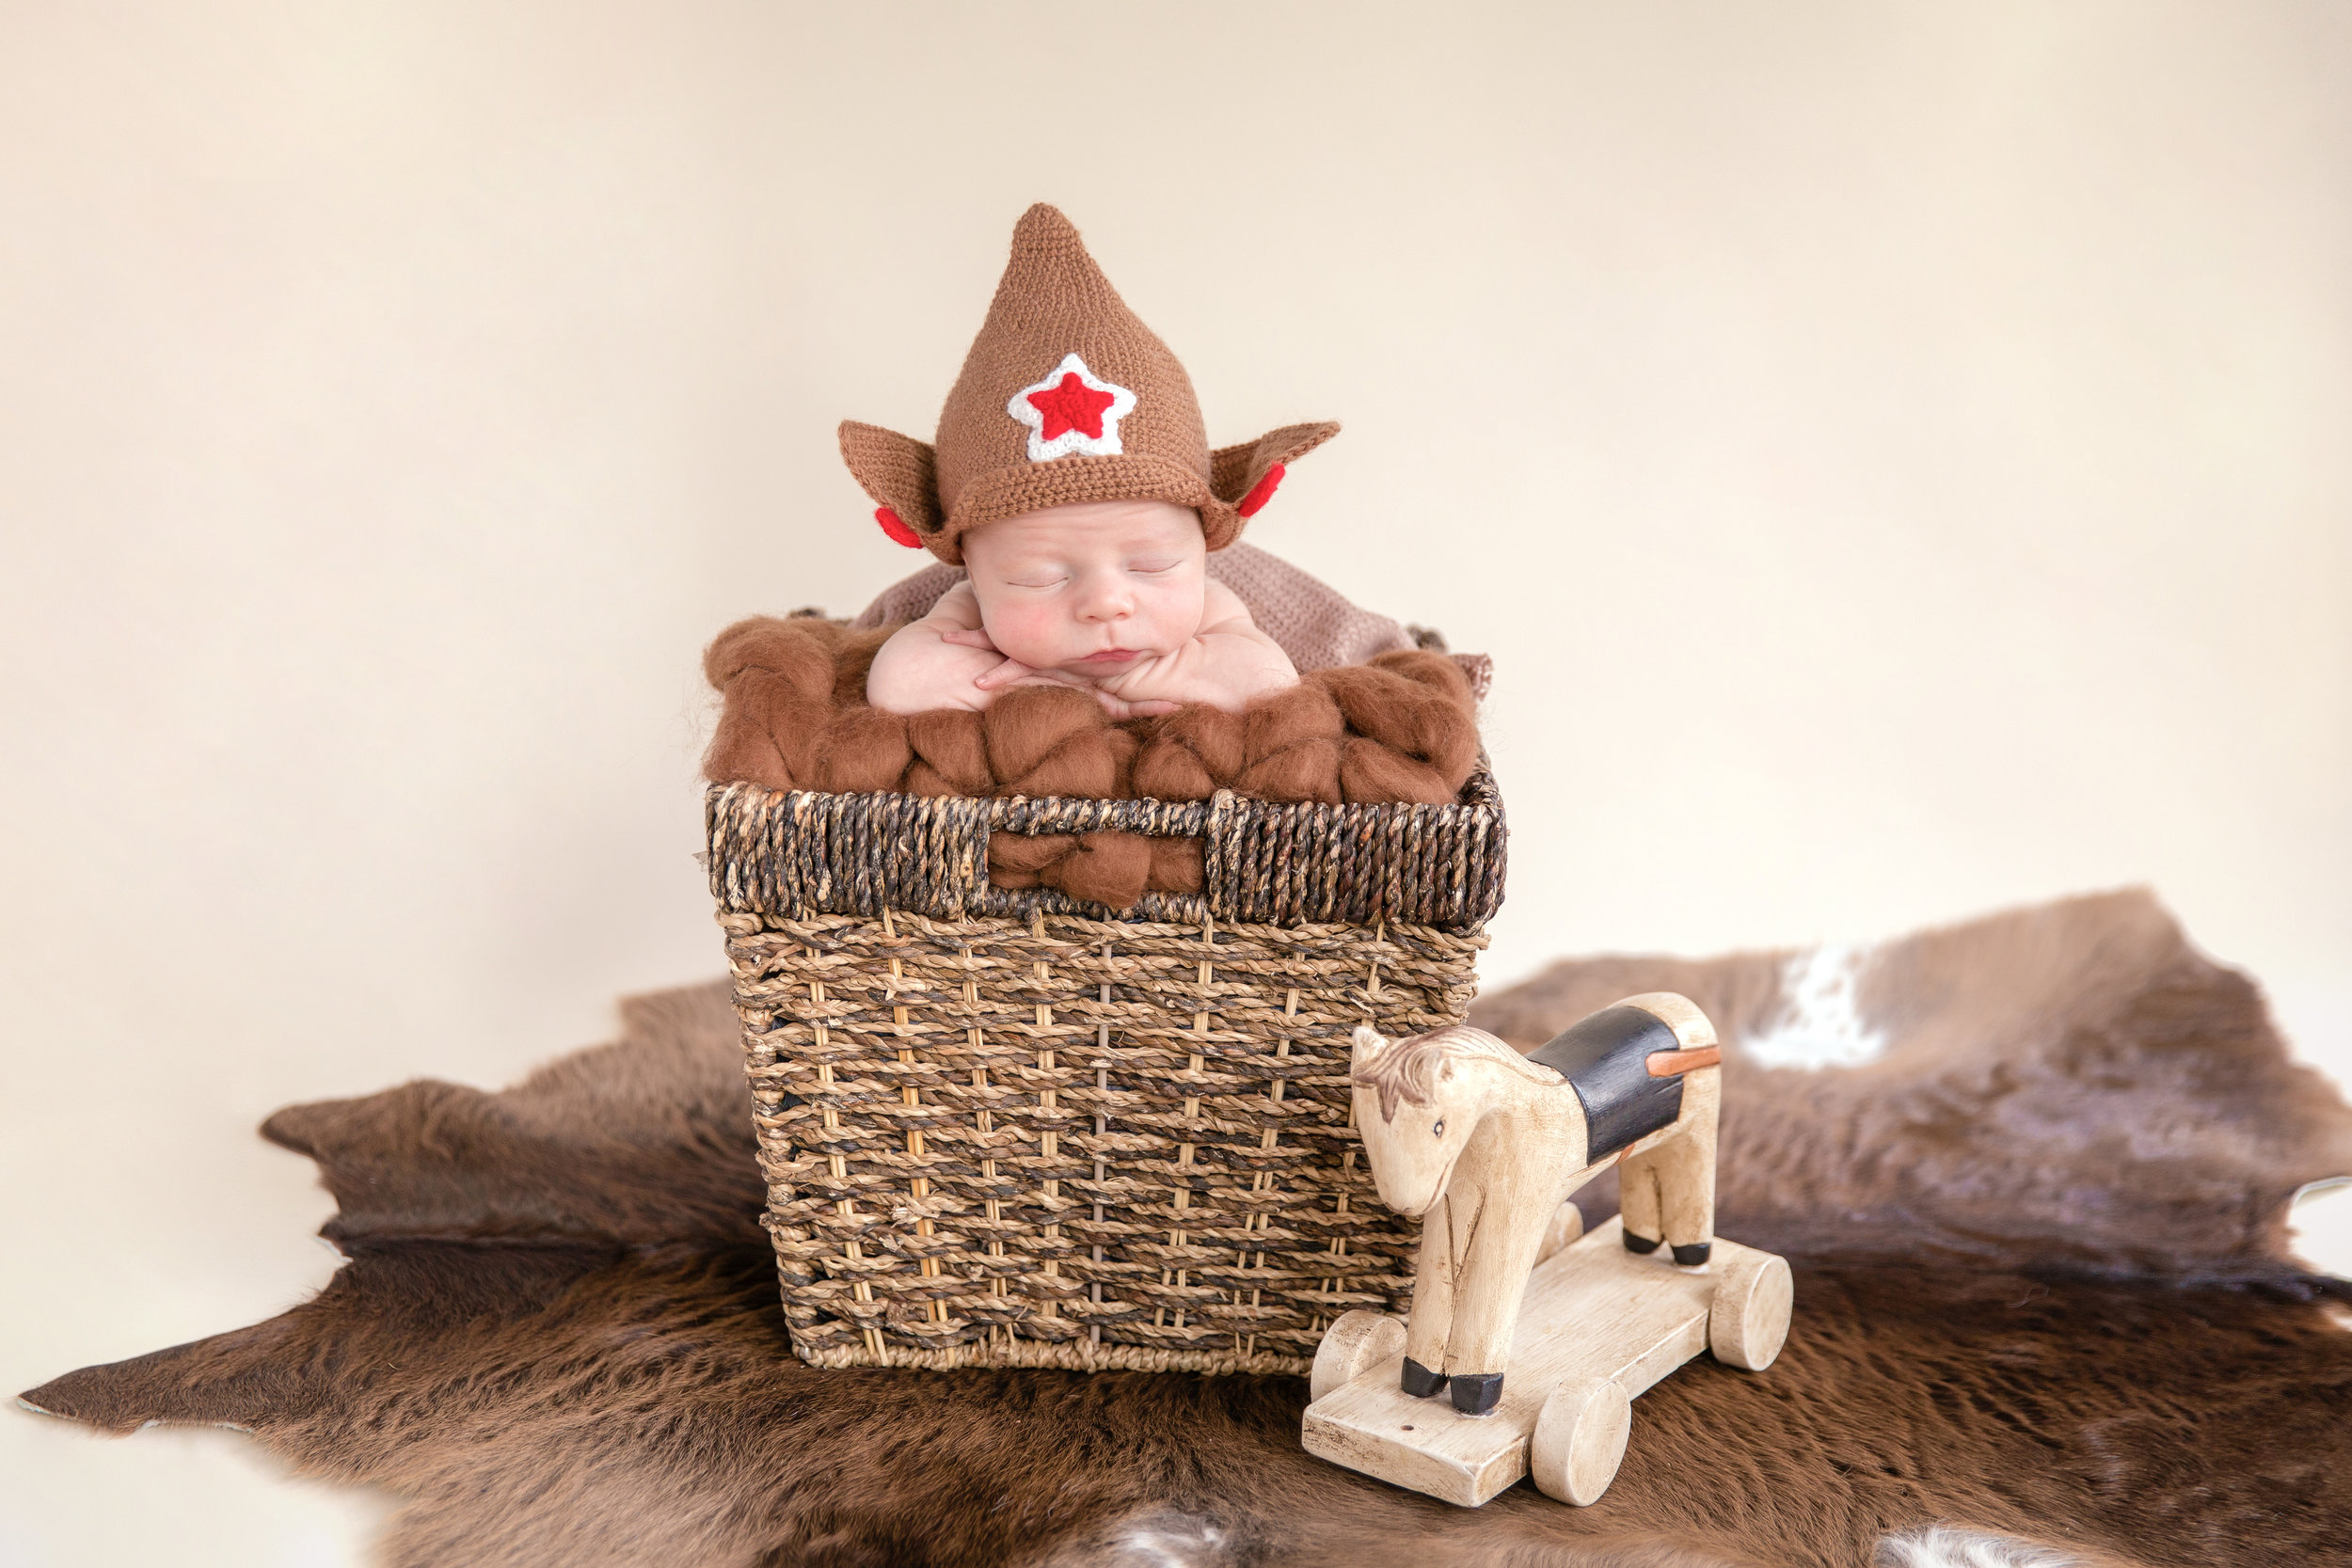 Russian Inspired Newborn Photoshoot. Baby boy in a basket wearing a Russian Civil War hat - budenovka with a wooden horse beside him. Calgary Newborn Photographer. Russian Newborn Photographer. Milashka Photography